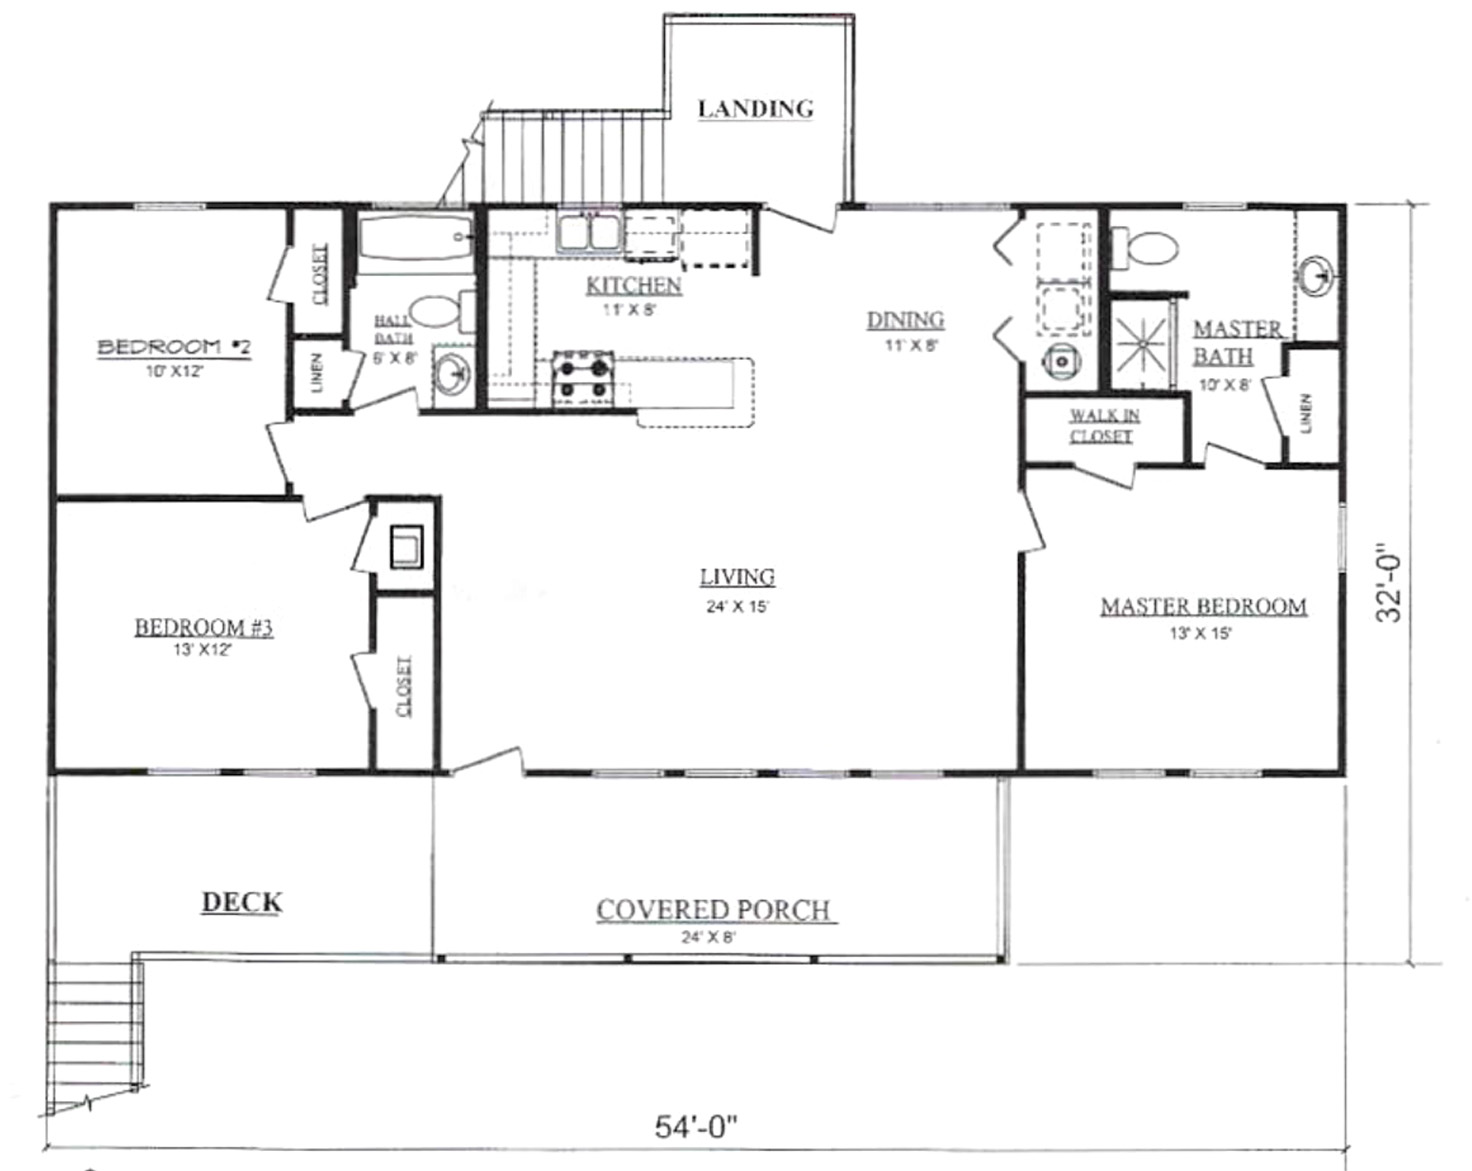 Plans for Pennyworth Homes Tallahassee Home Builder Ebtide